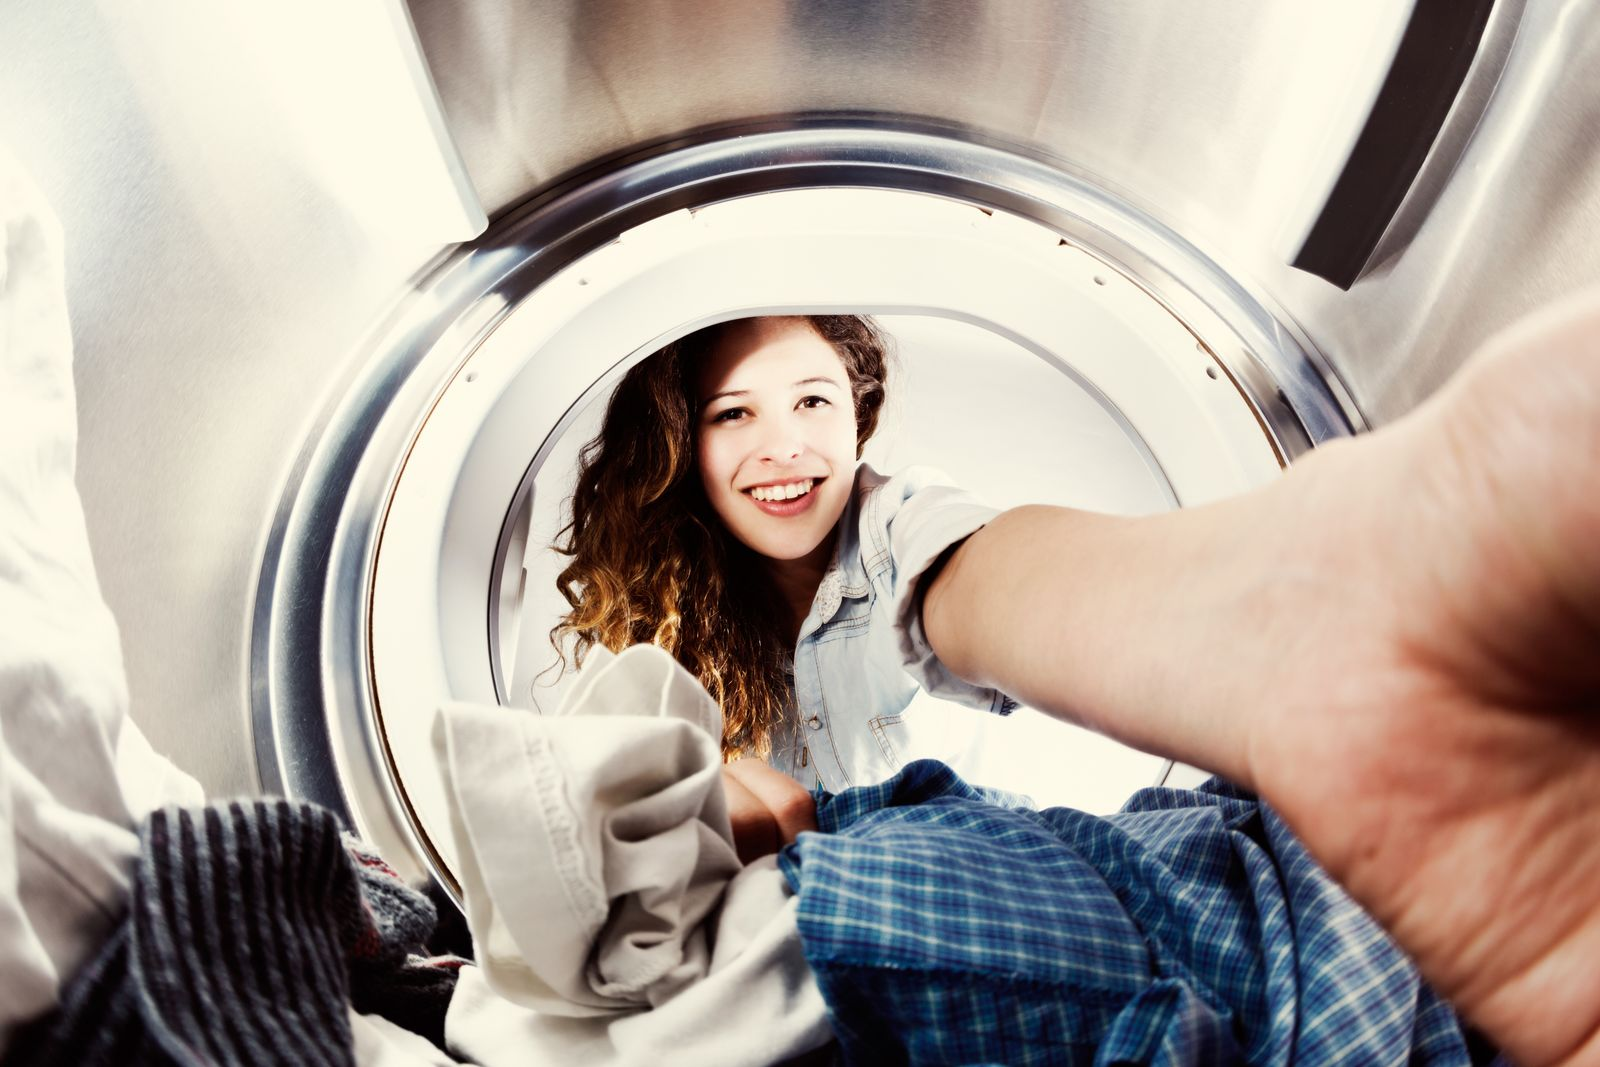 Smiling young beauty loads clothes dryer, seen from inside drum